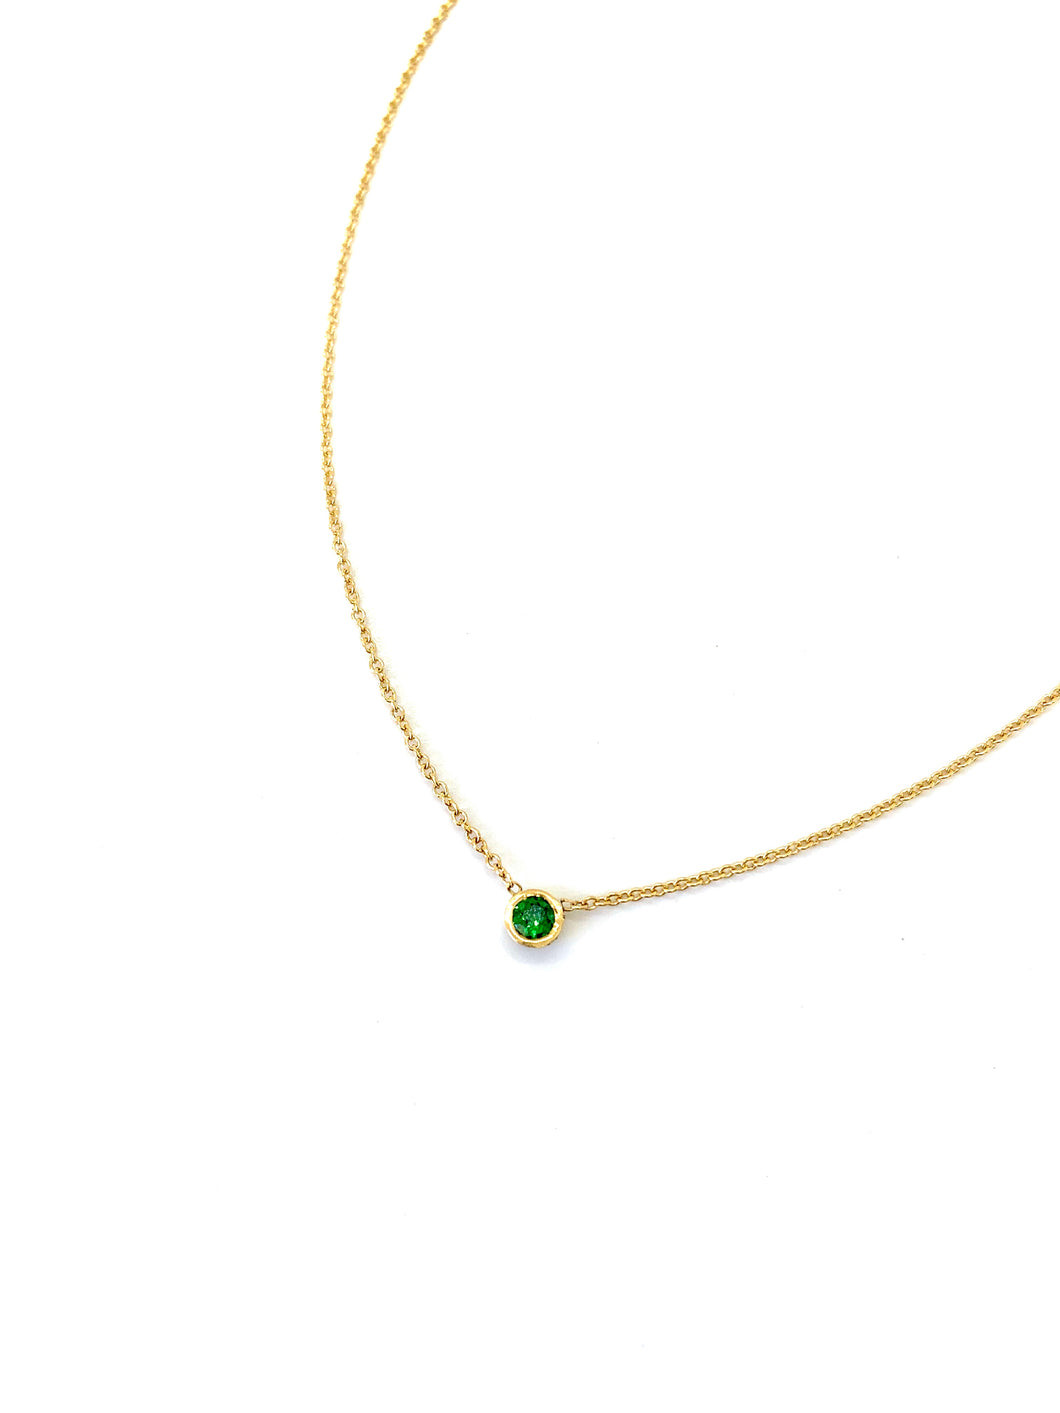 Materials include a 16-inch 14k yellow gold chain w/ a 3mm green garnet gemstone